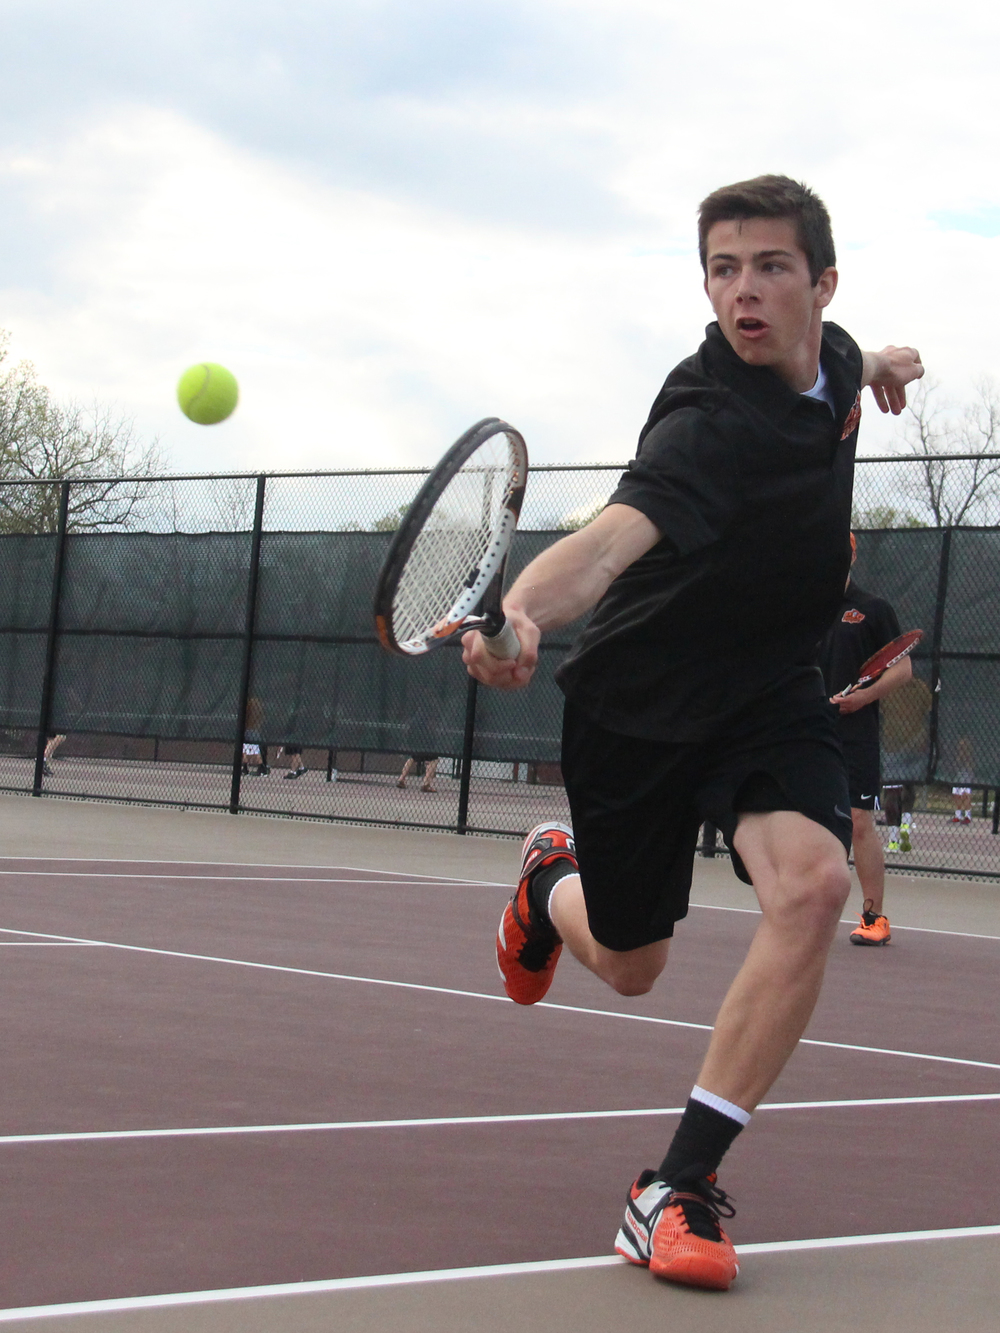 ROSS MARTIN/Citizen photo Platte County senior Zack Regan hits a backhand near the net during the No. 1 doubles match against Winnetonka during a dual Thursday, March 31 at Winnetonka High School in Kansas City, Mo.